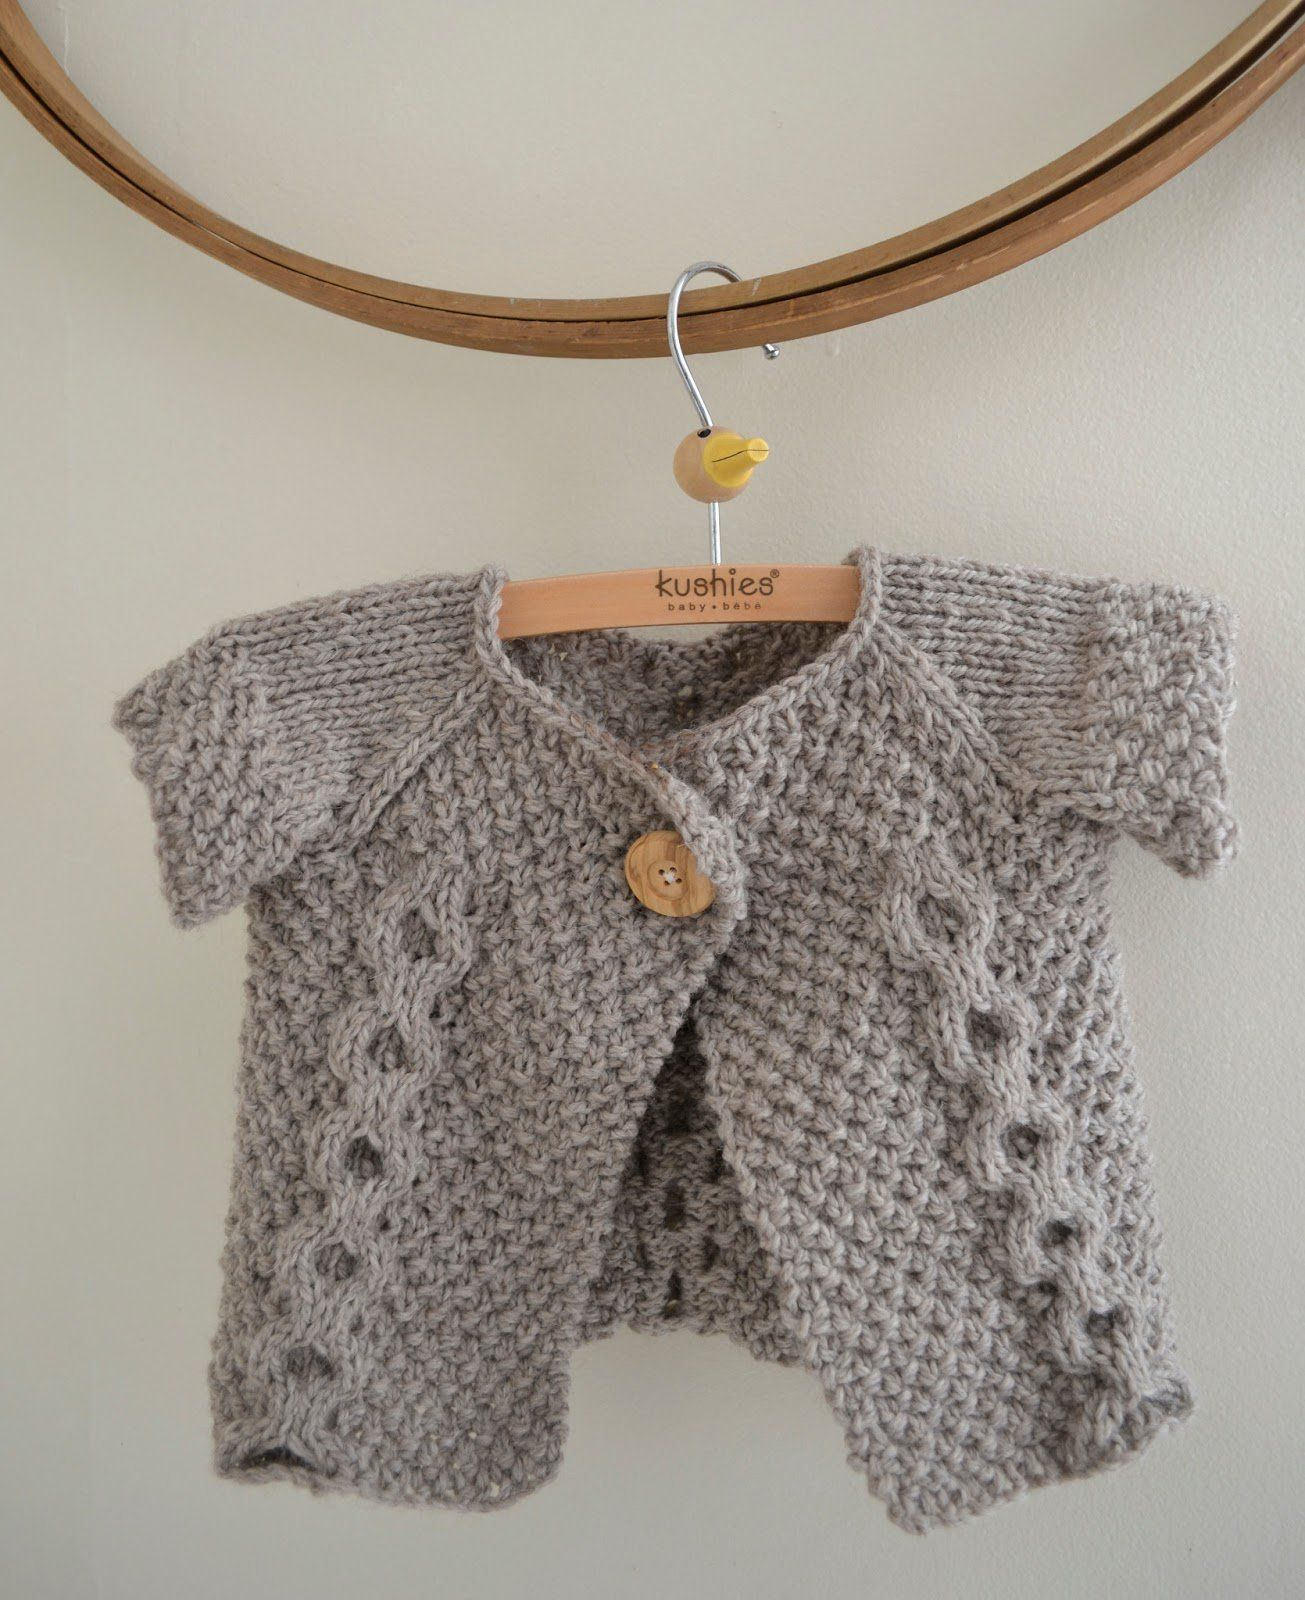 Free Knitting Pattern - Baby Knits: Double Breasted Baby Sweater ...